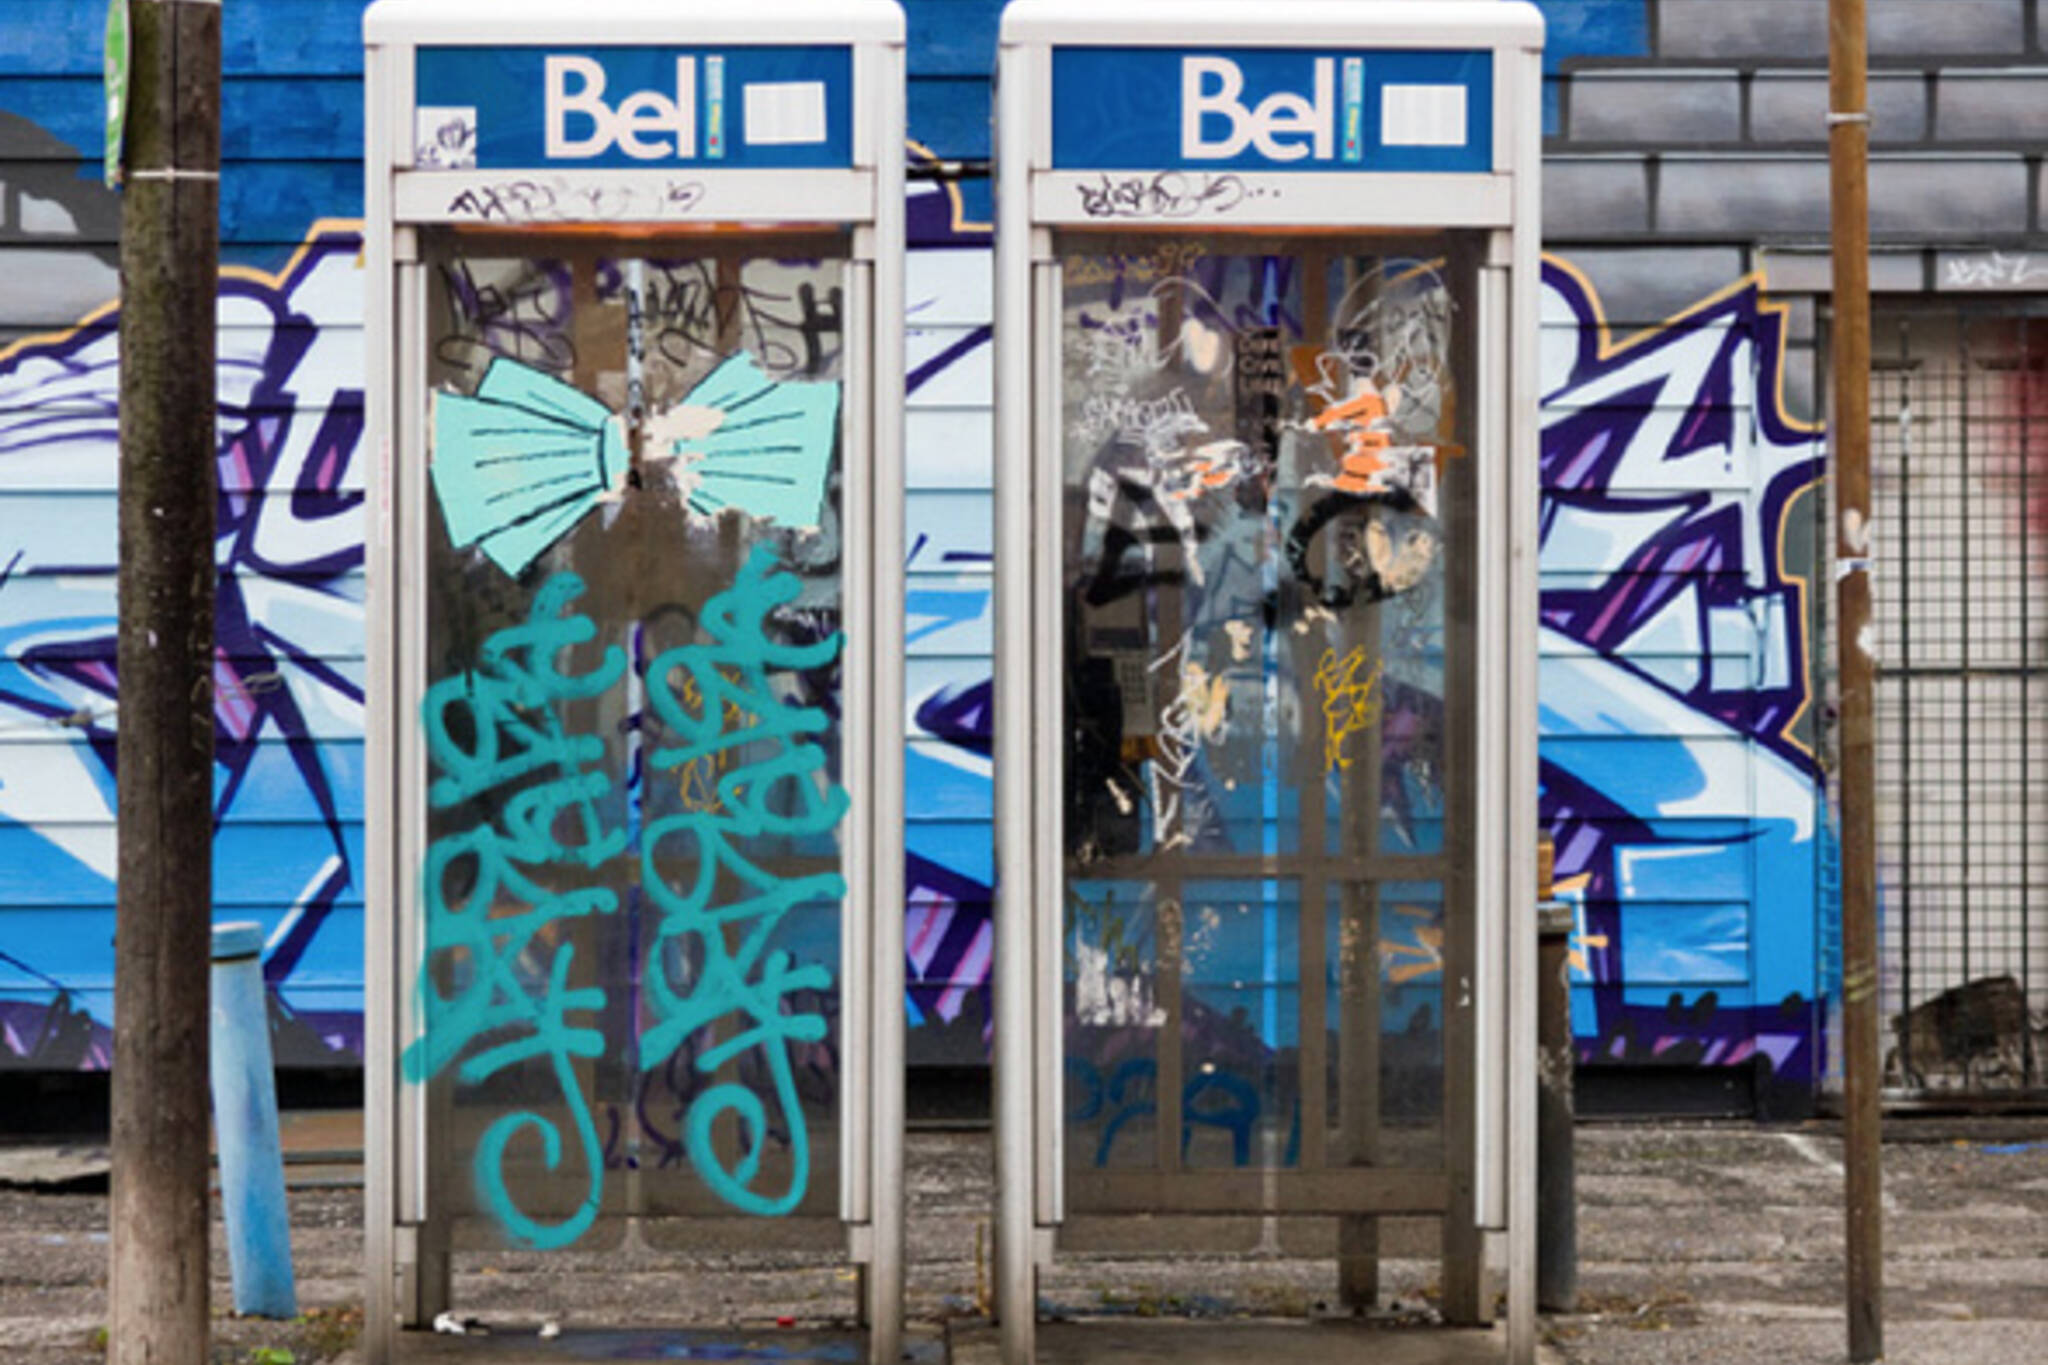 Bell Phone booth